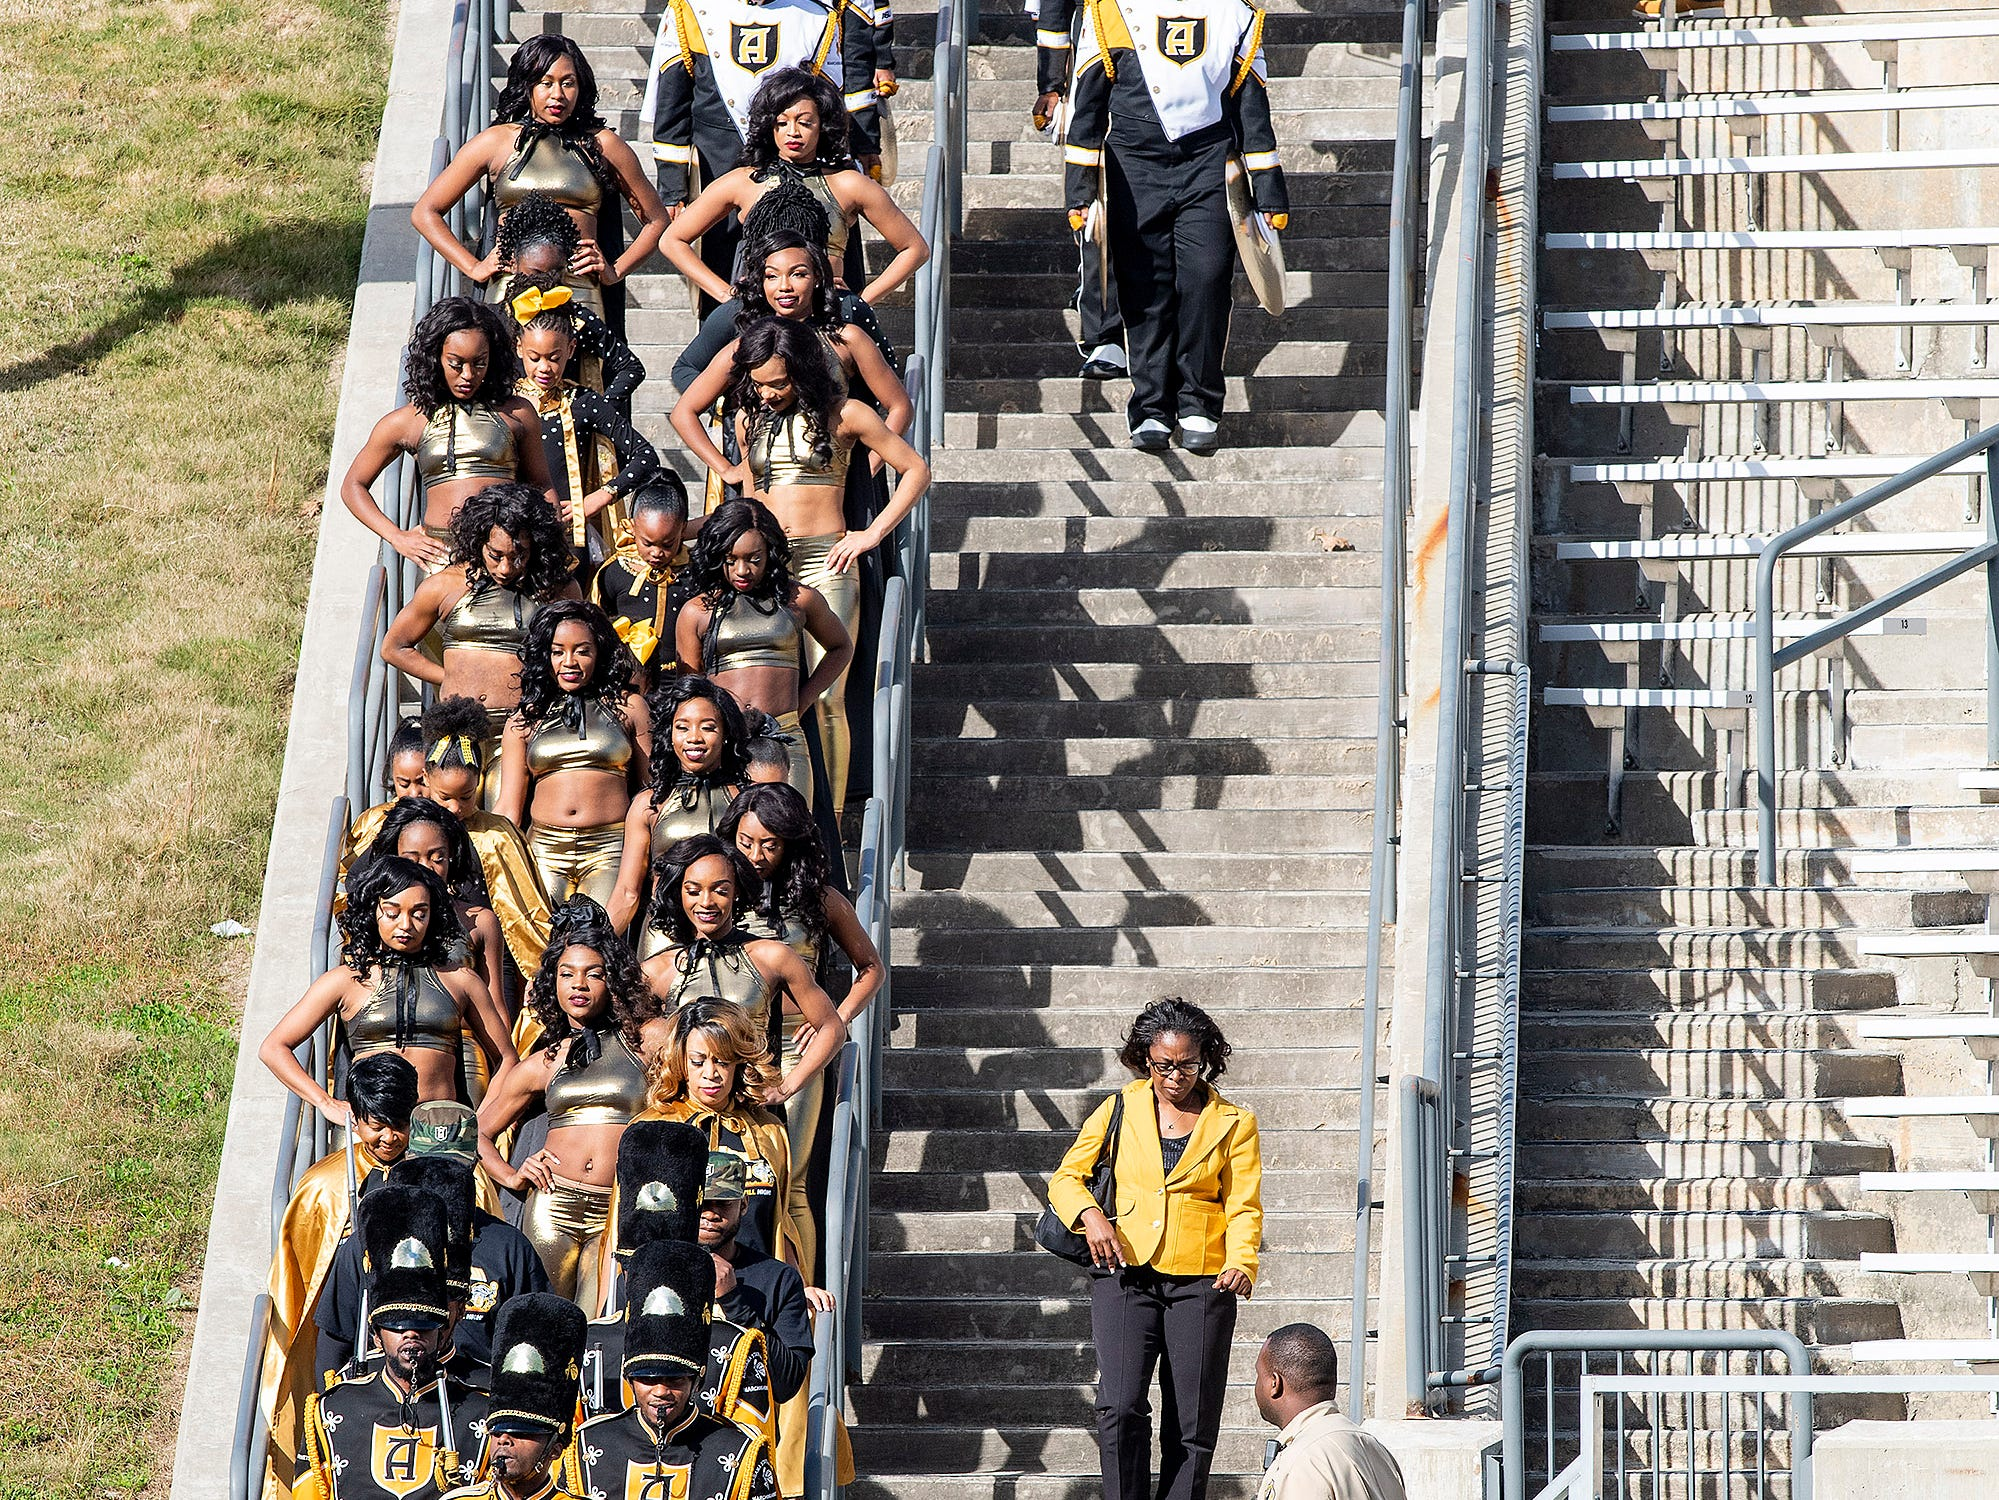 The Alabama State University Marching Hornets arrive for the Turkey Day Classic at Hornet Stadium on the ASU campus in Montgomery, Ala., on Thanksgiving Day, Thursday November 22, 2018.